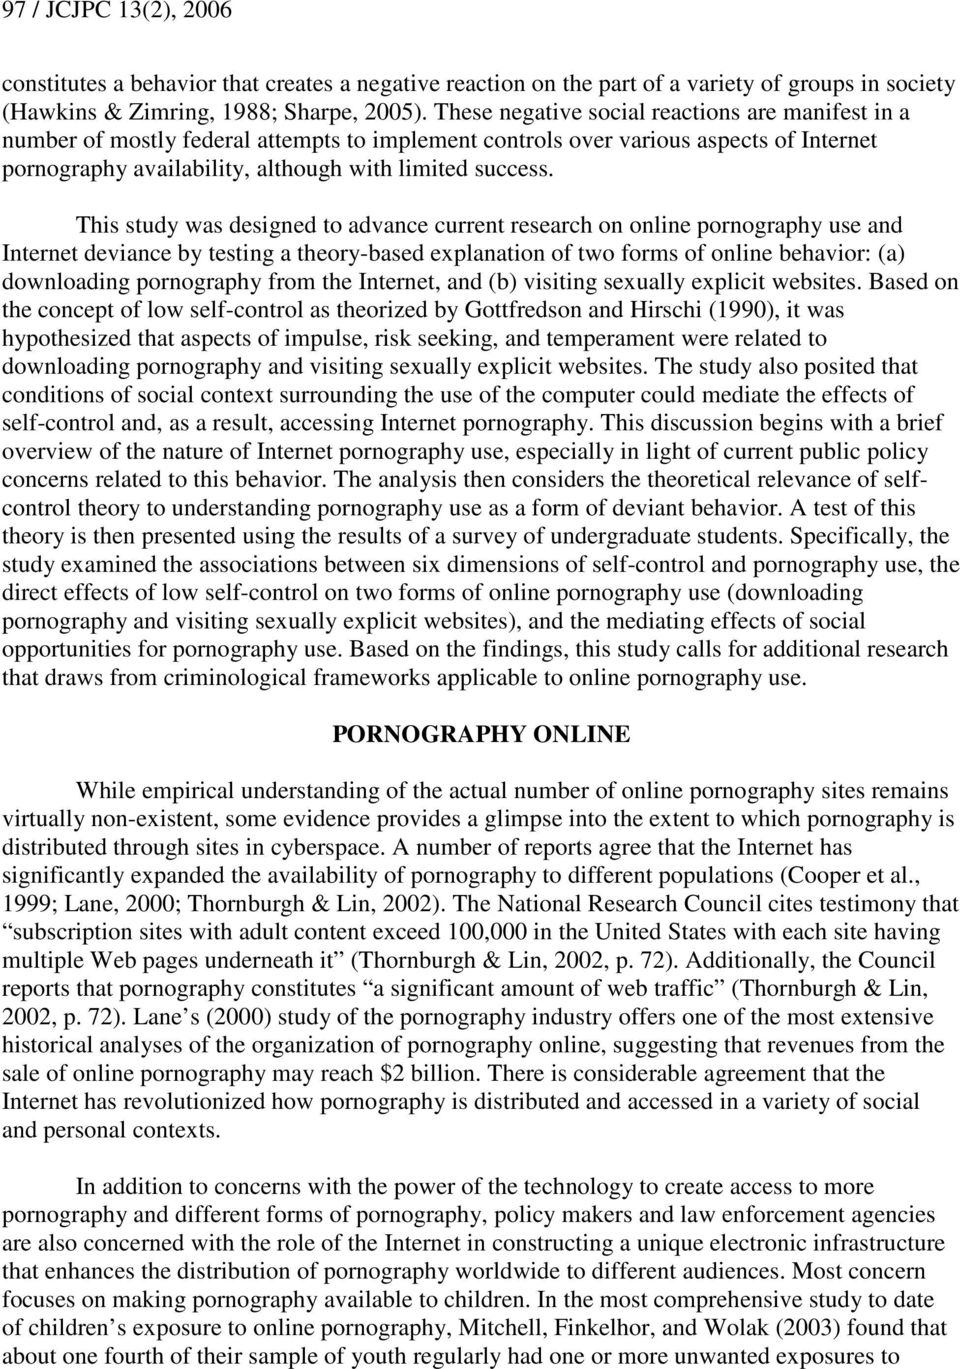 This study was designed to advance current research on online pornography use and Internet deviance by testing a theory-based explanation of two forms of online behavior: (a) downloading pornography